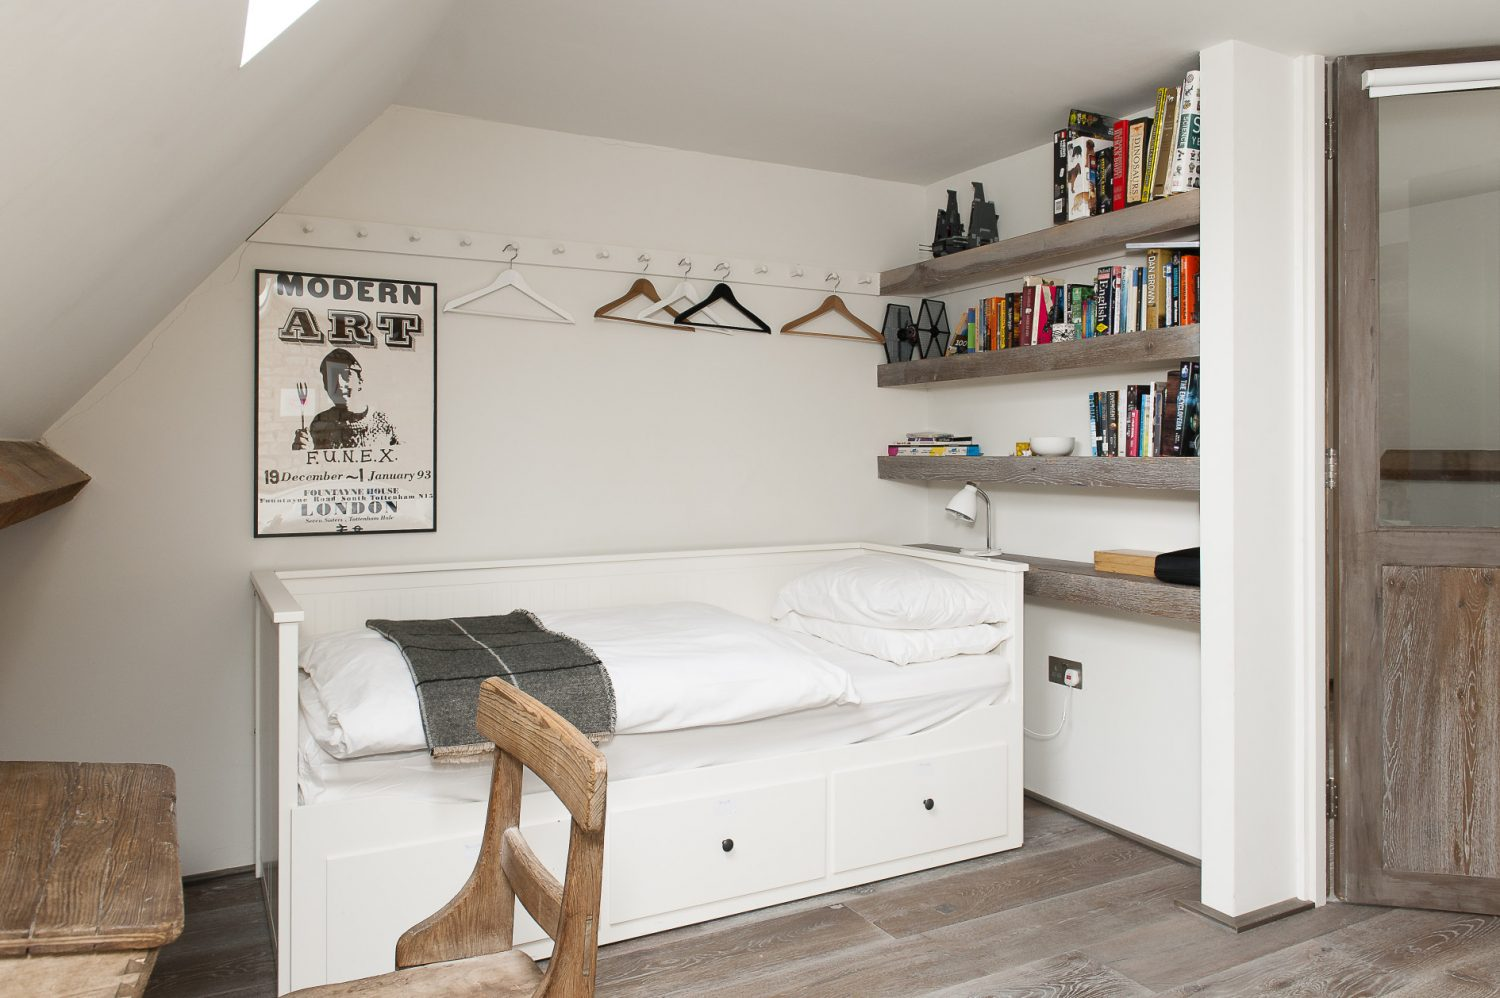 Marta's son Lucas's room has been designed with friends staying in mind